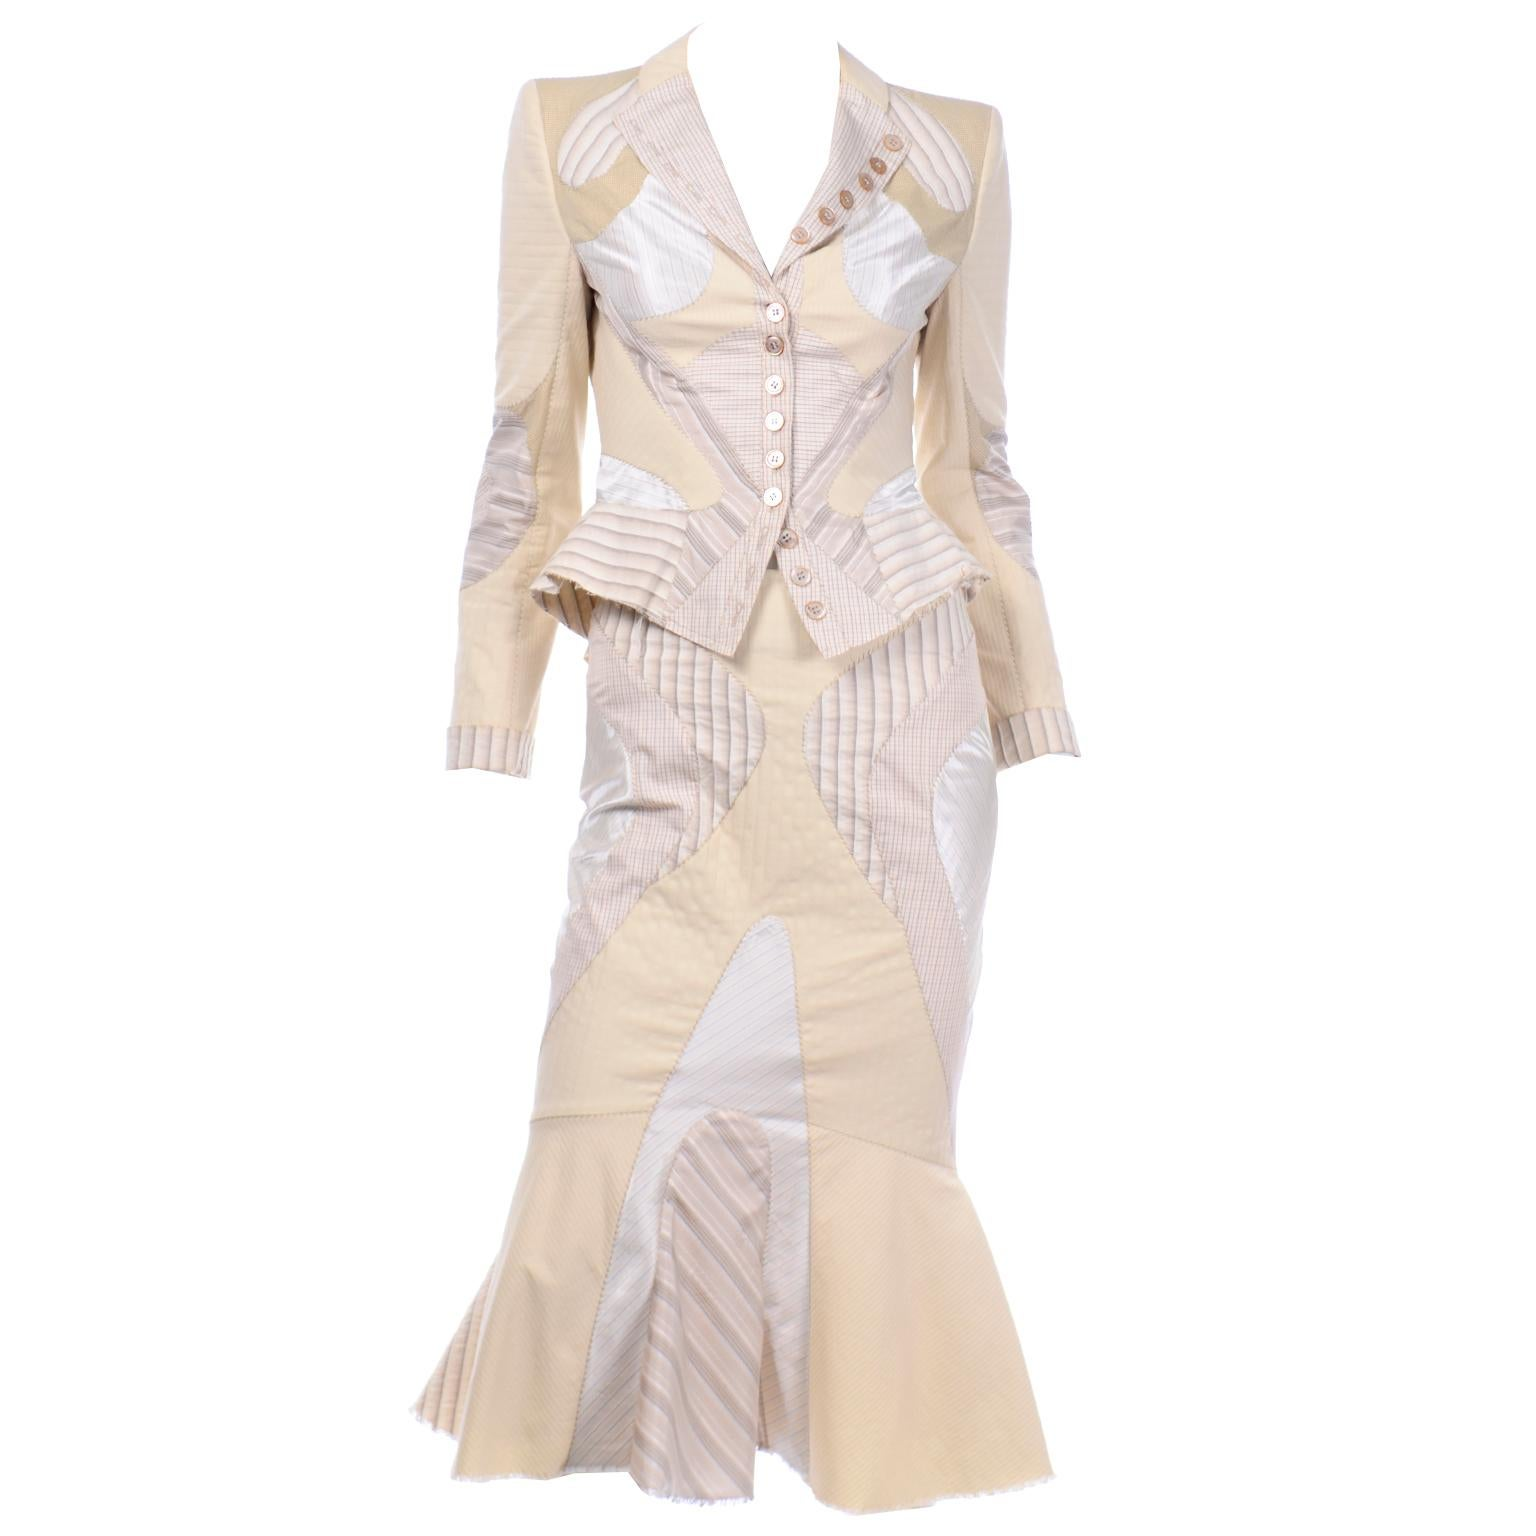 Alexander McQueen Spring 2004 Deliverance Patchwork 2pc Skirt & Jacket Outfit